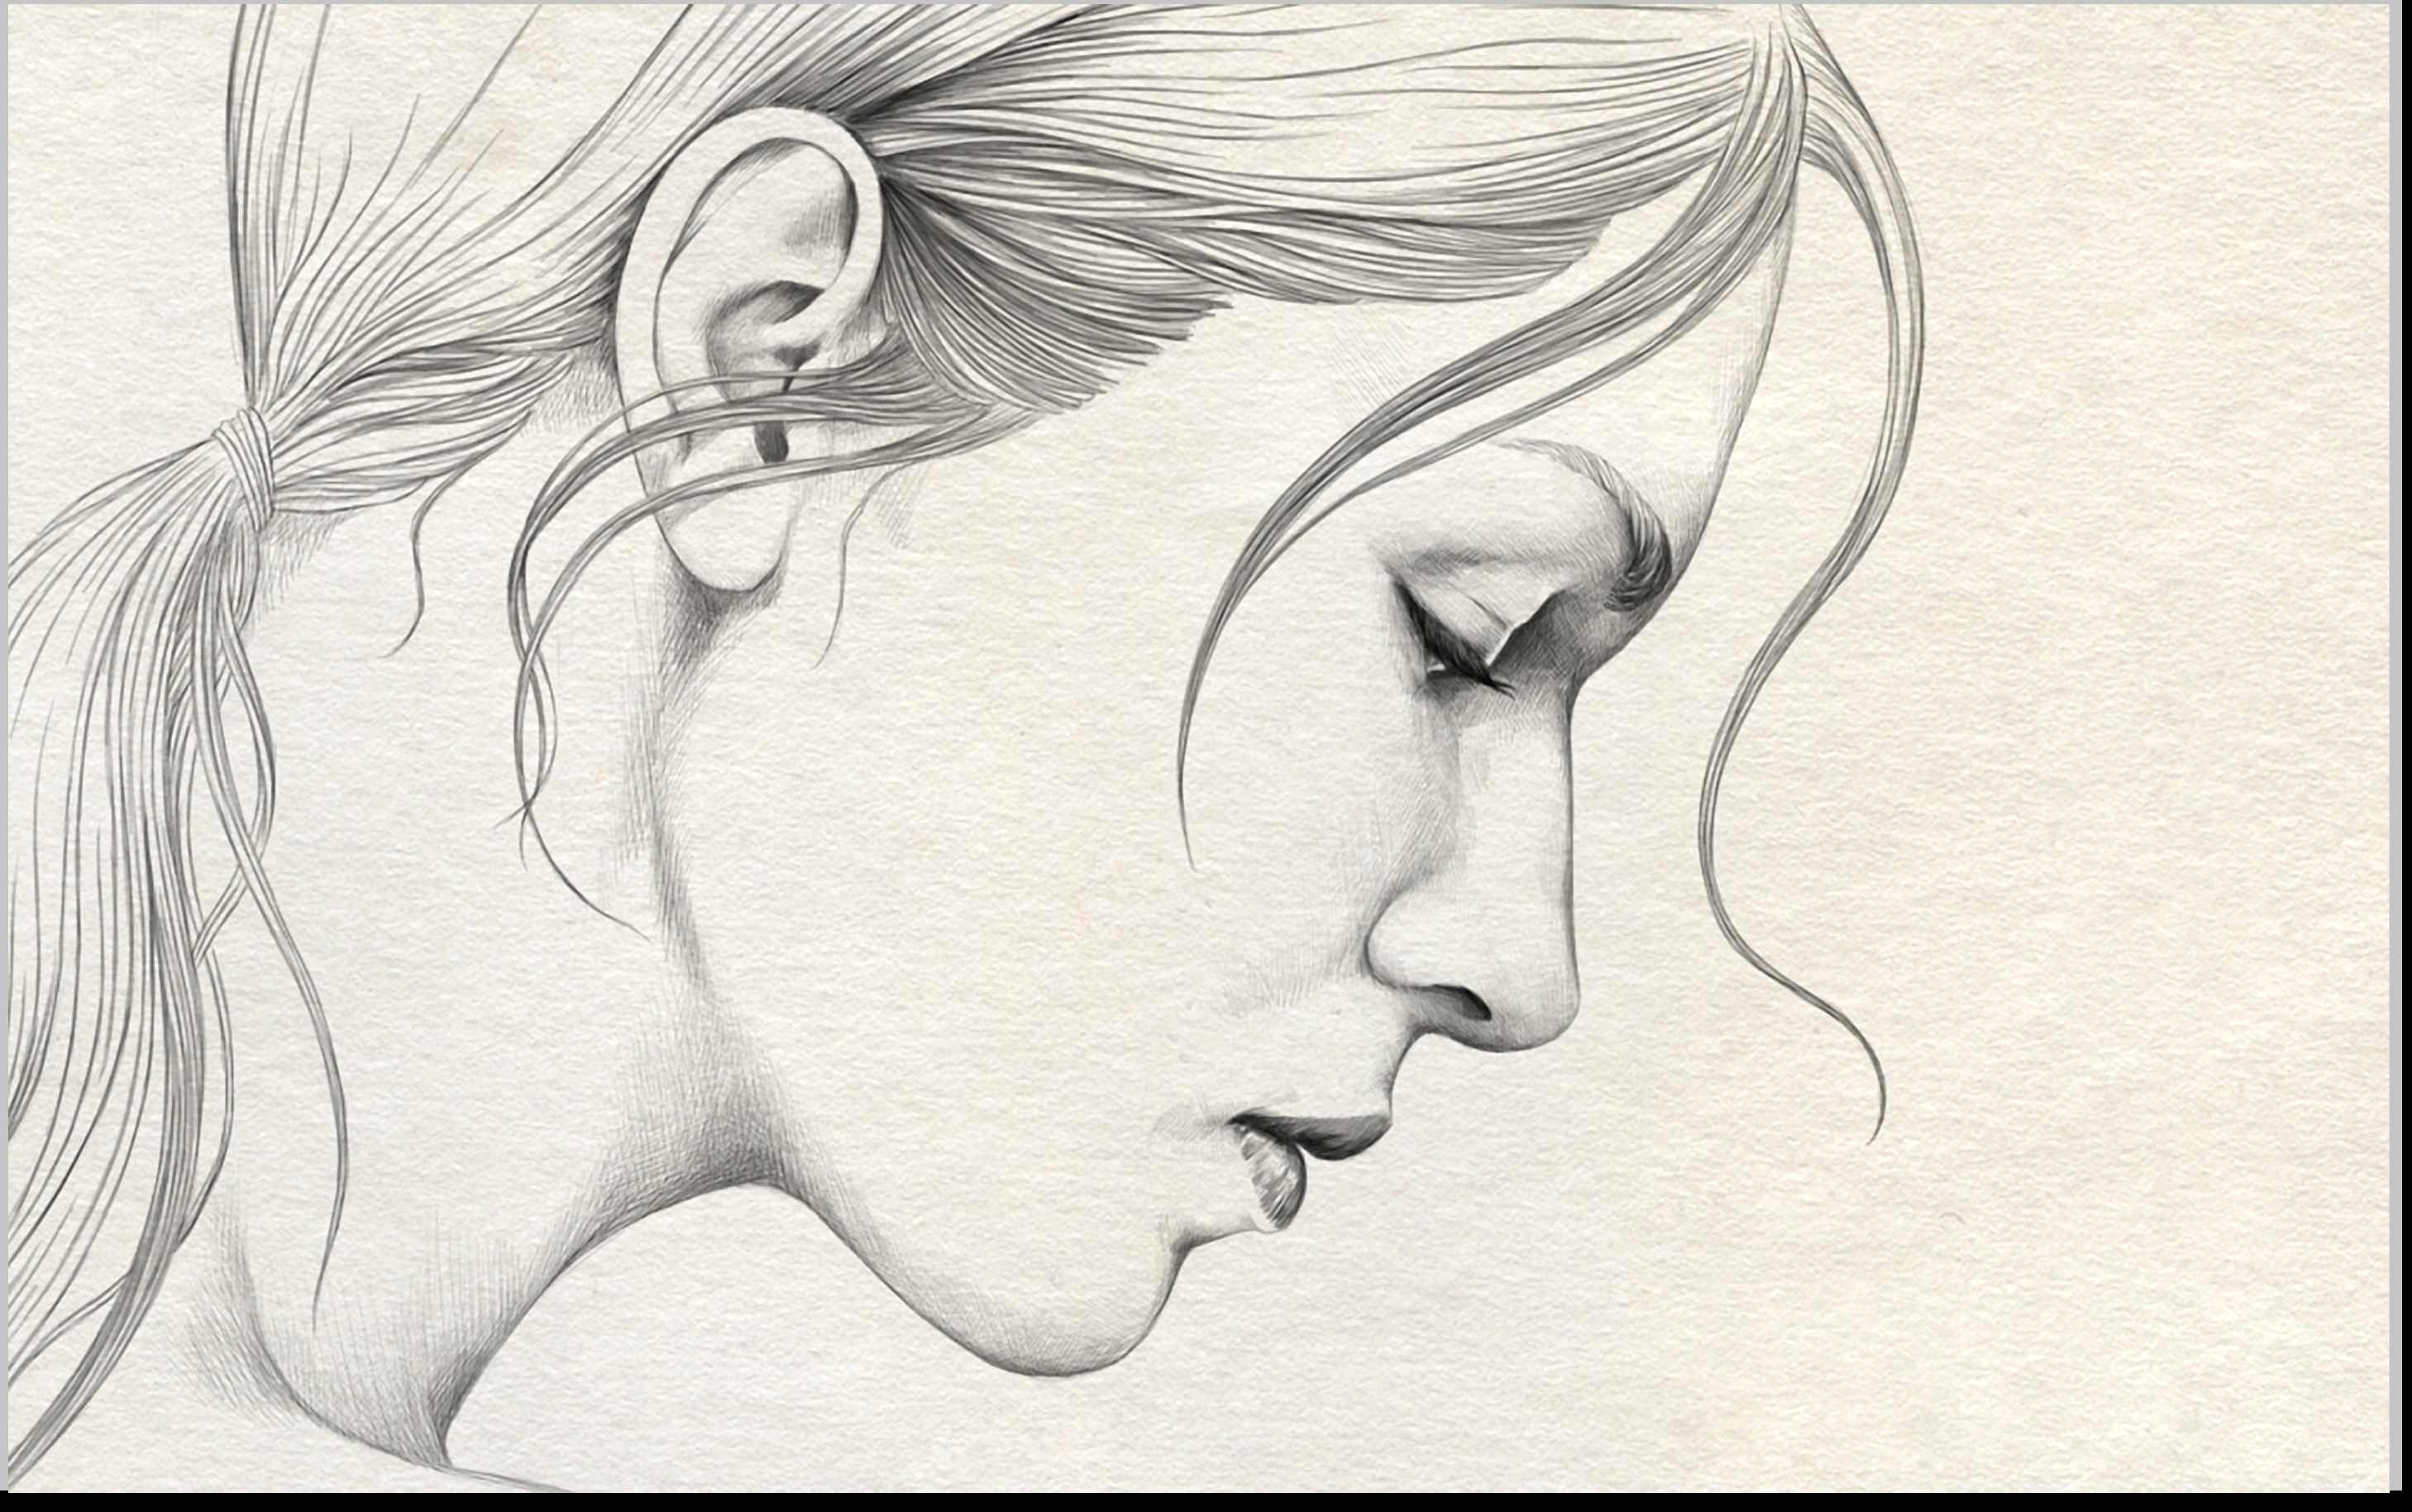 drawing ideas images - HD1920×1201